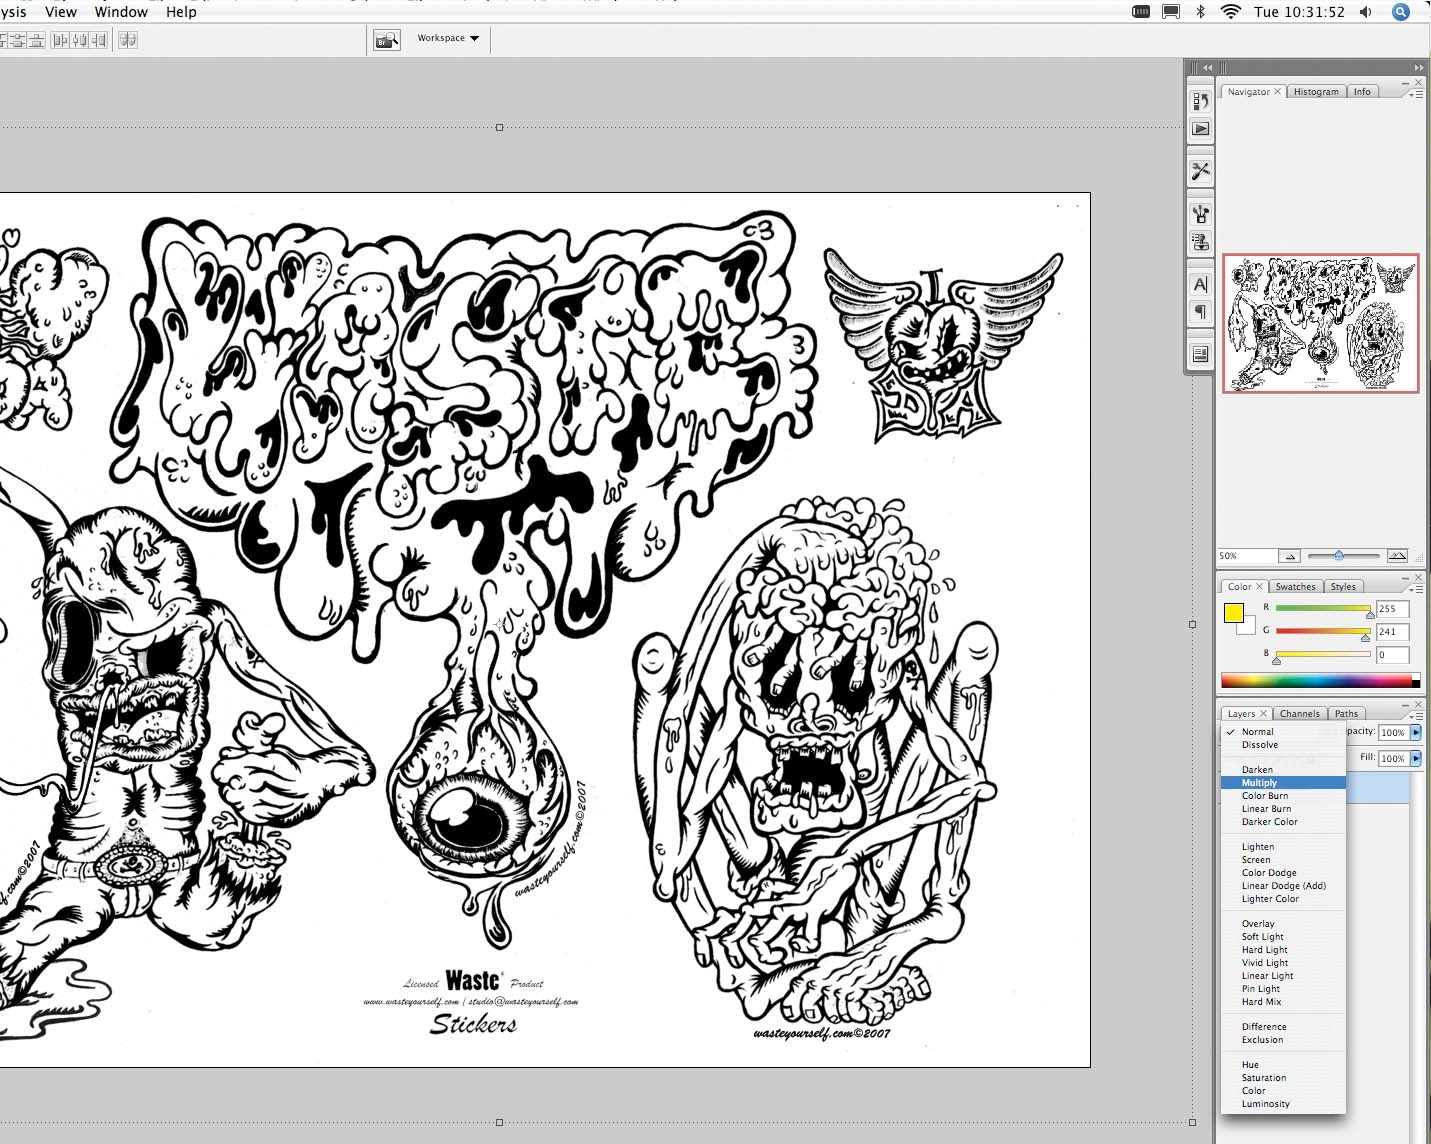 Photoshop tutorial: How to design stickers in Photoshop